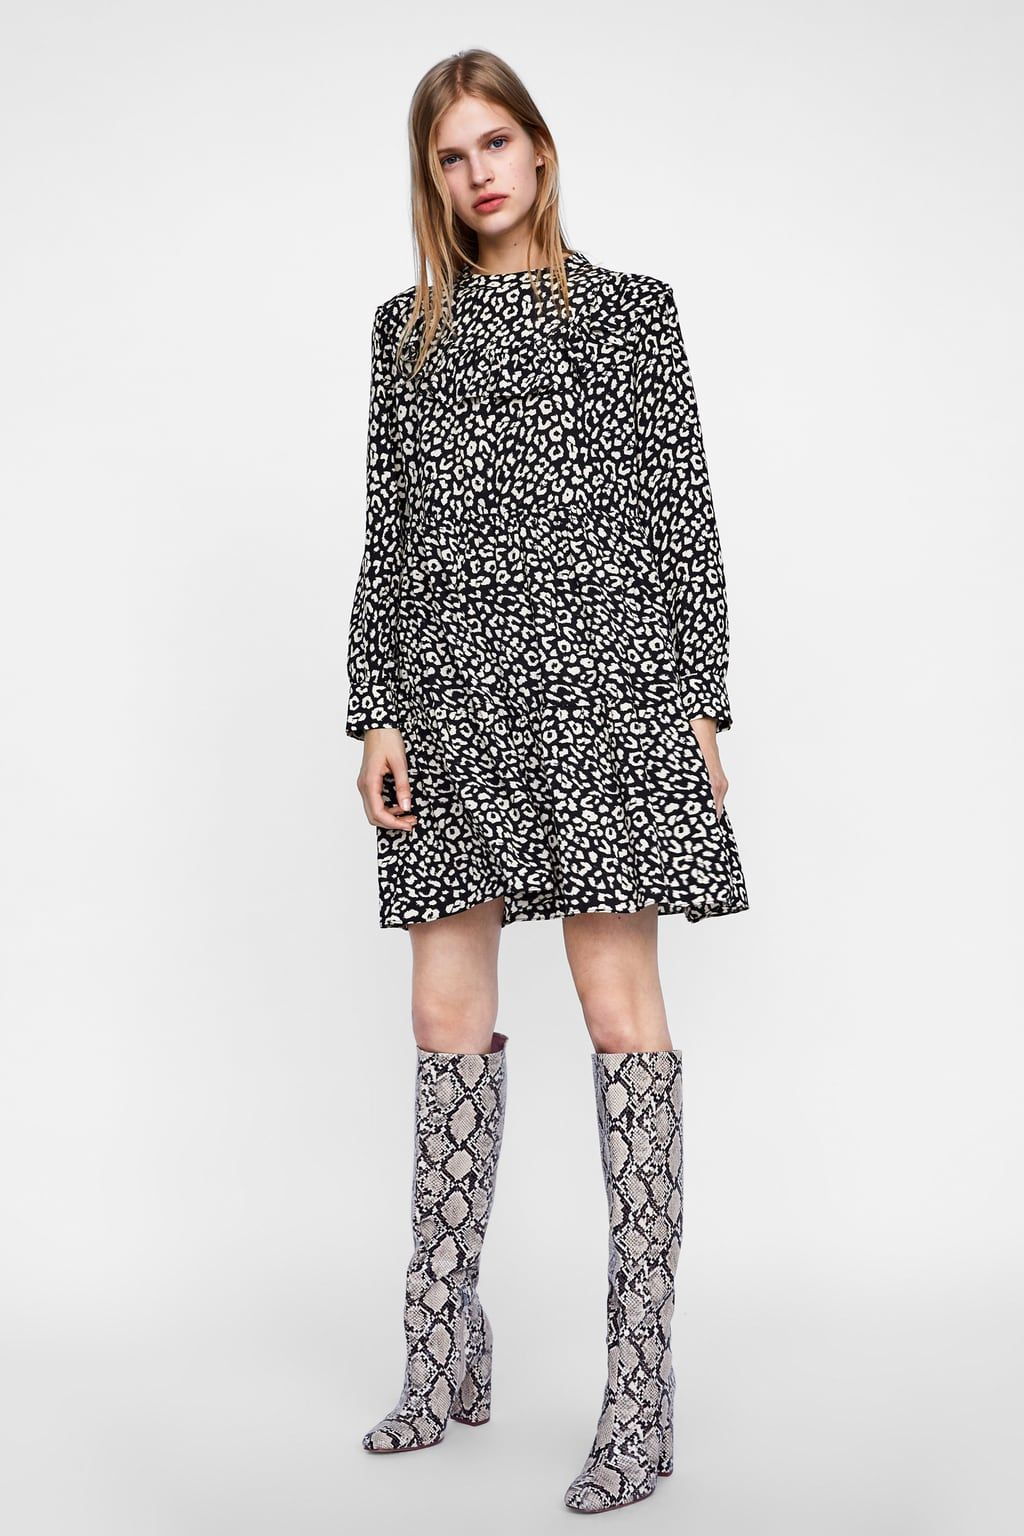 5e4408dcaaf0 Image 1 of RUFFLED ANIMAL PRINT DRESS from Zara | Love! | Animal ...